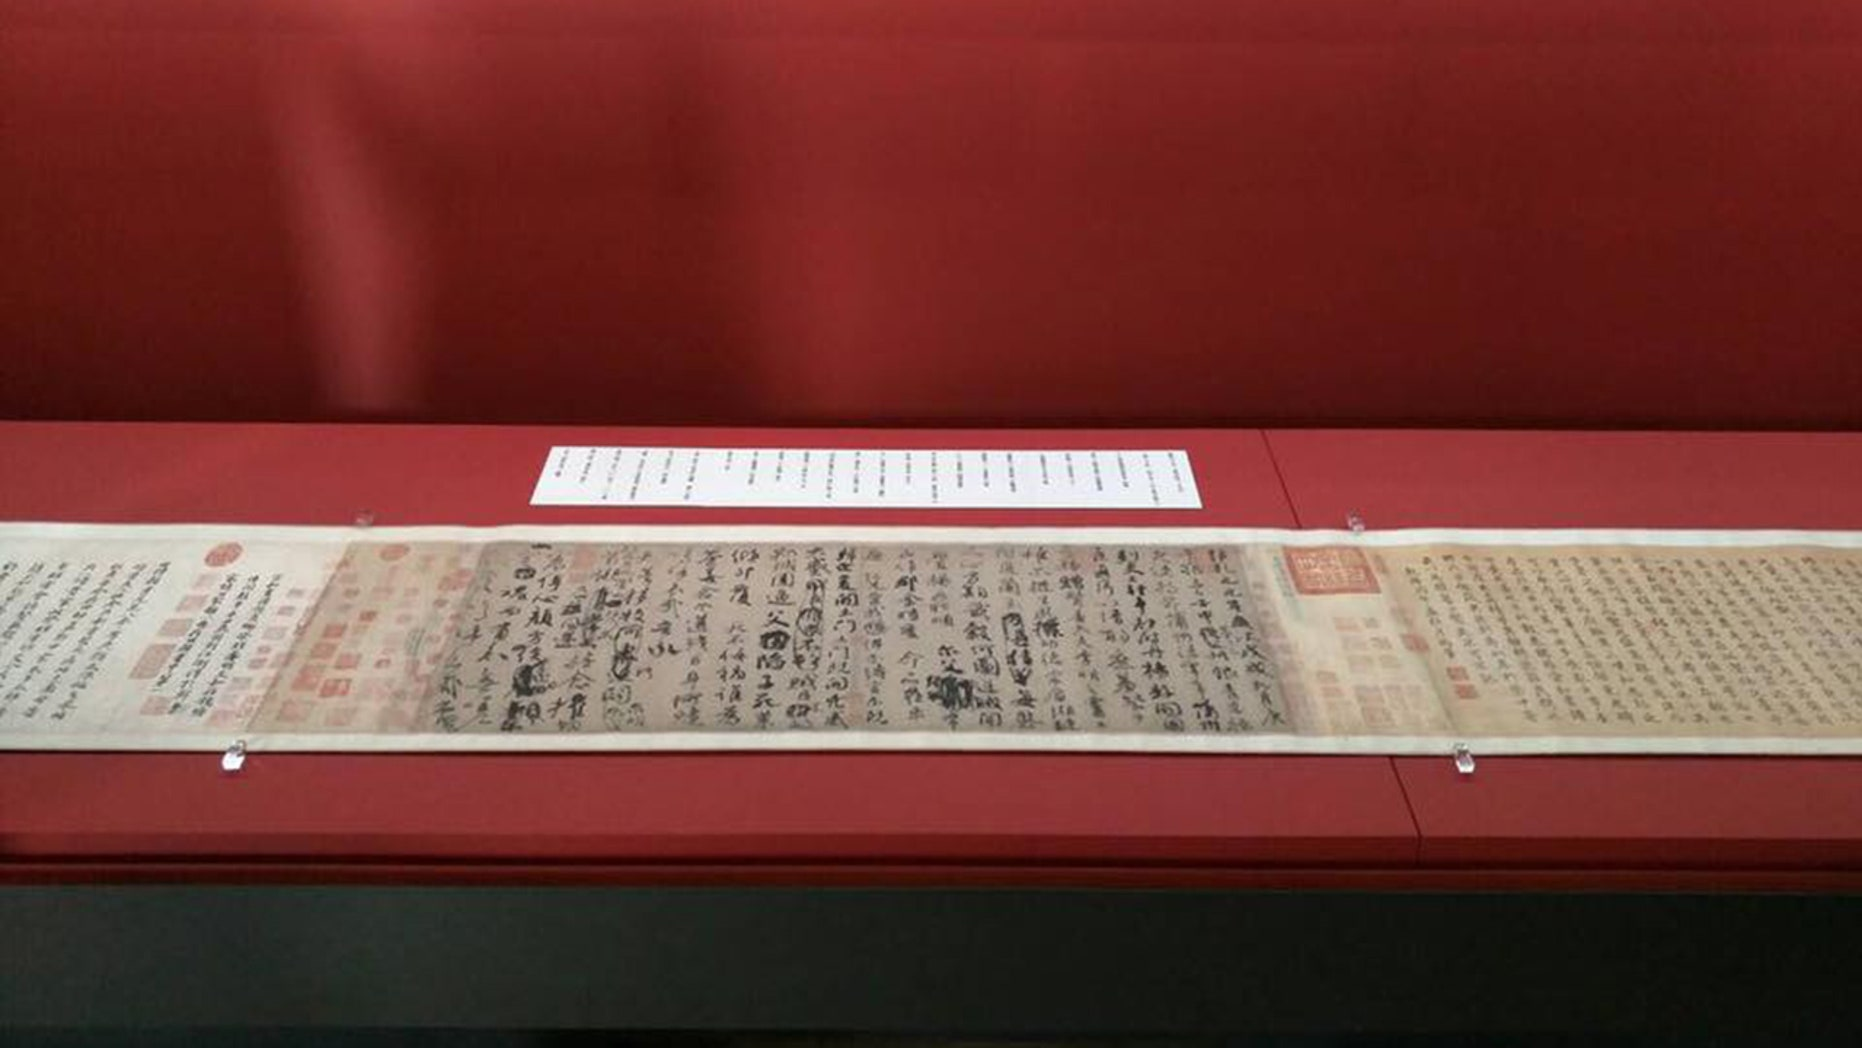 A 1,200-year-old calligraphy masterpiece by renowned calligrapher Yan Zhenqing has sparked outrage in China after news that it would be loaned to a Japan museum was made public.